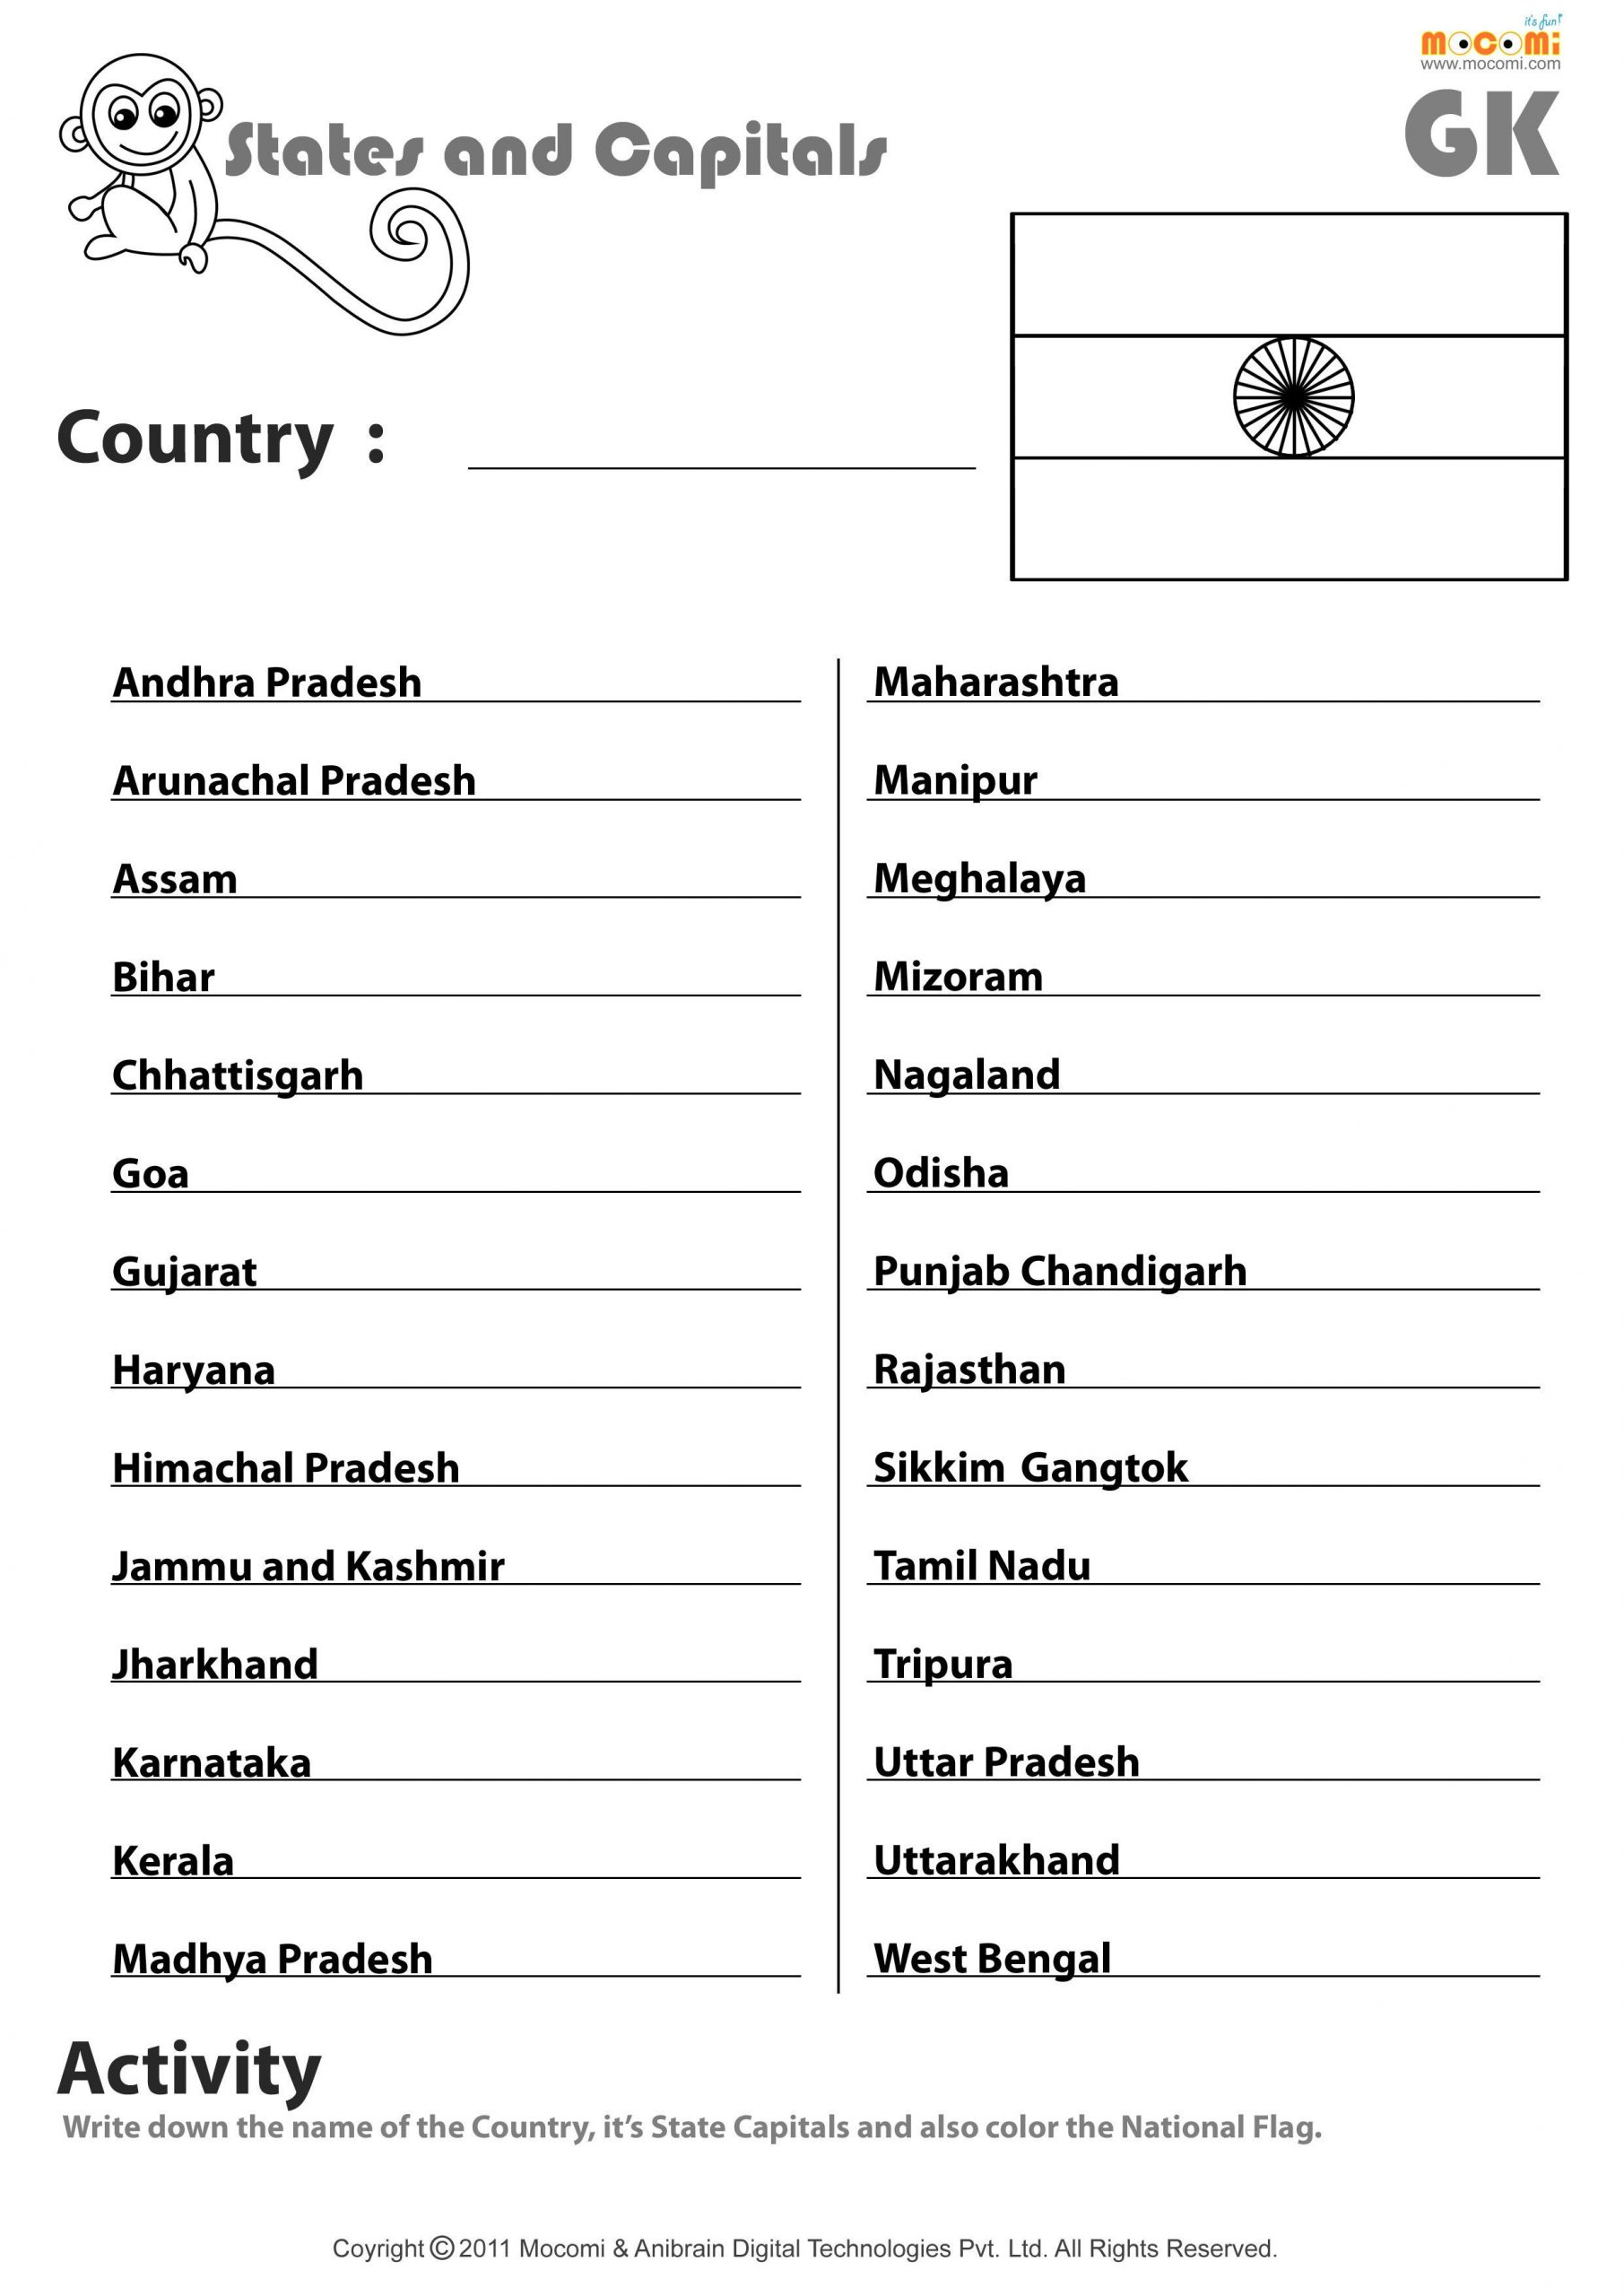 State Capitals Quiz Printable Identifying State Capitals Worksheet